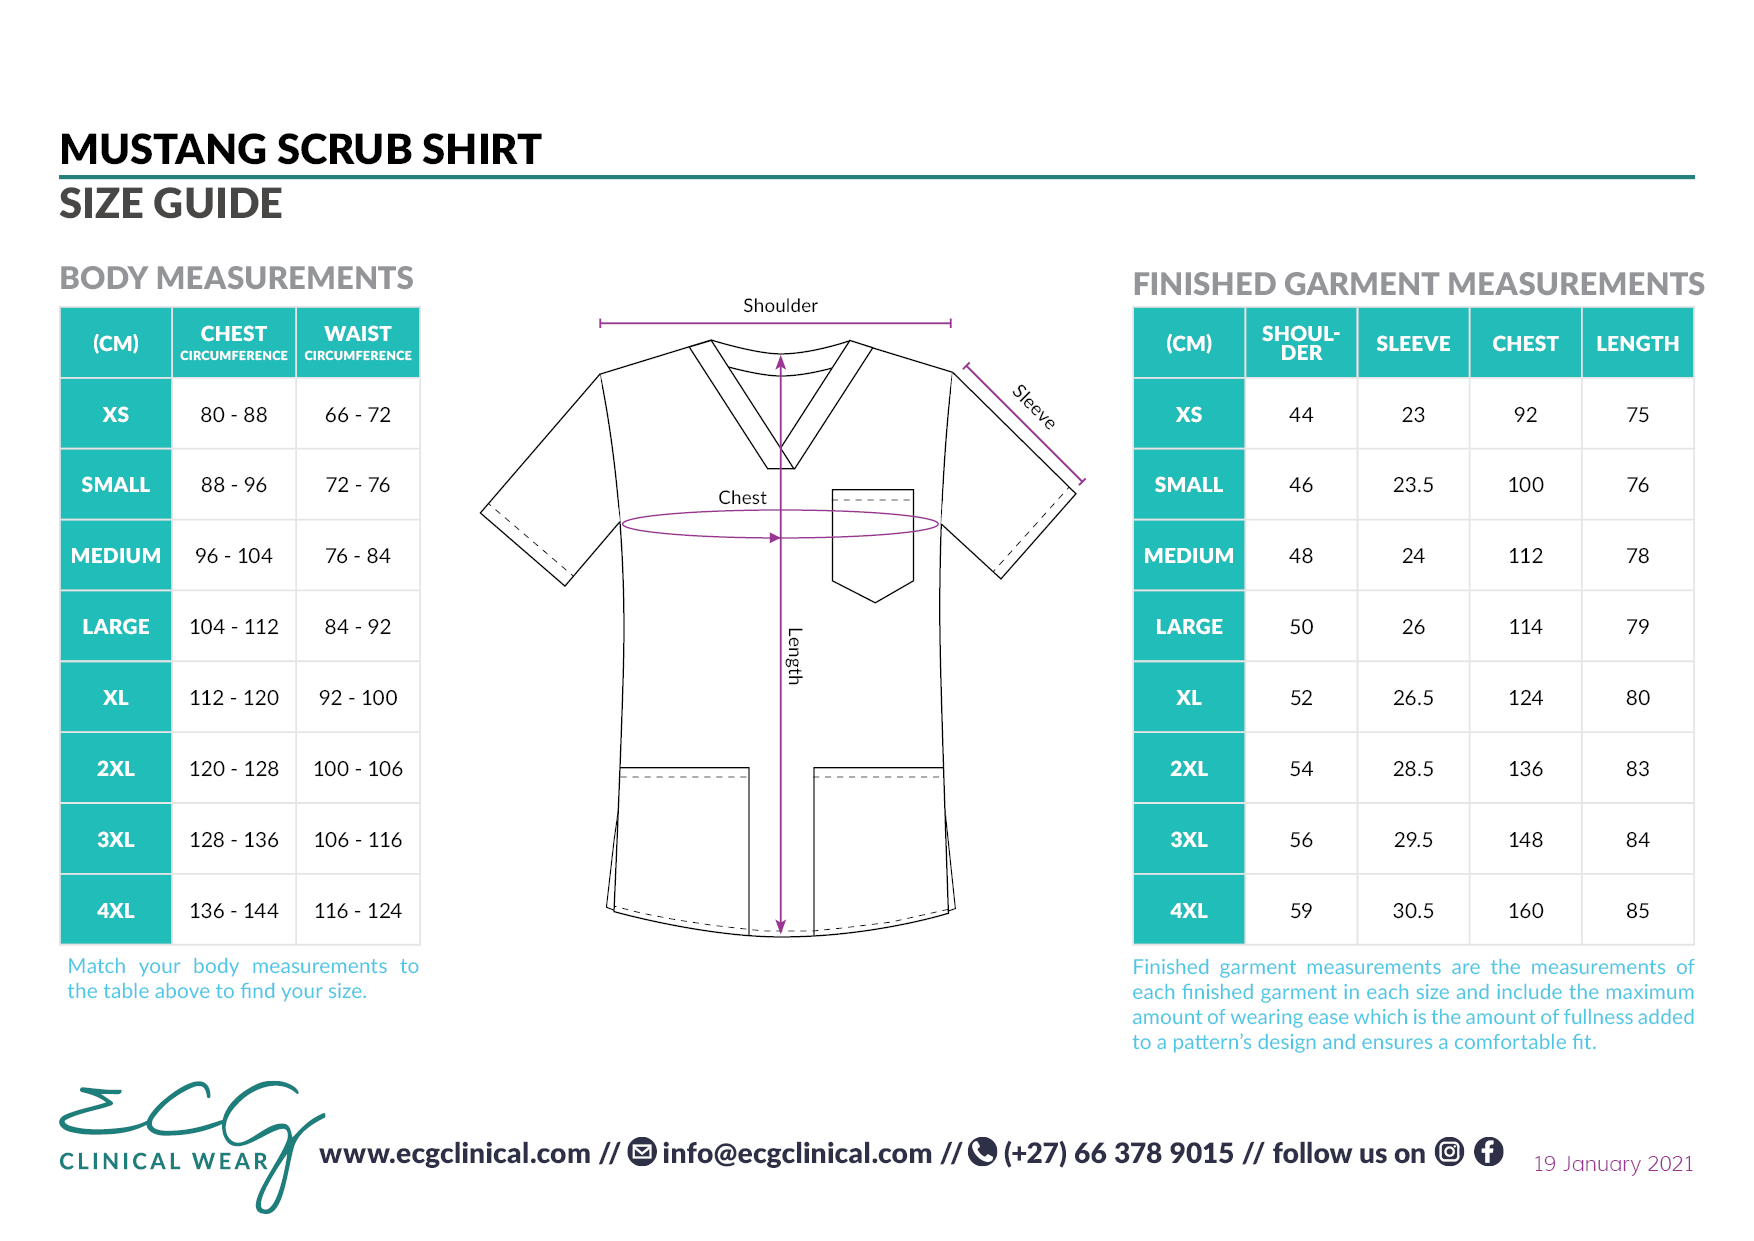 ECG Clinical Wear Mustang Scrub Shirt Size and Fit Guide